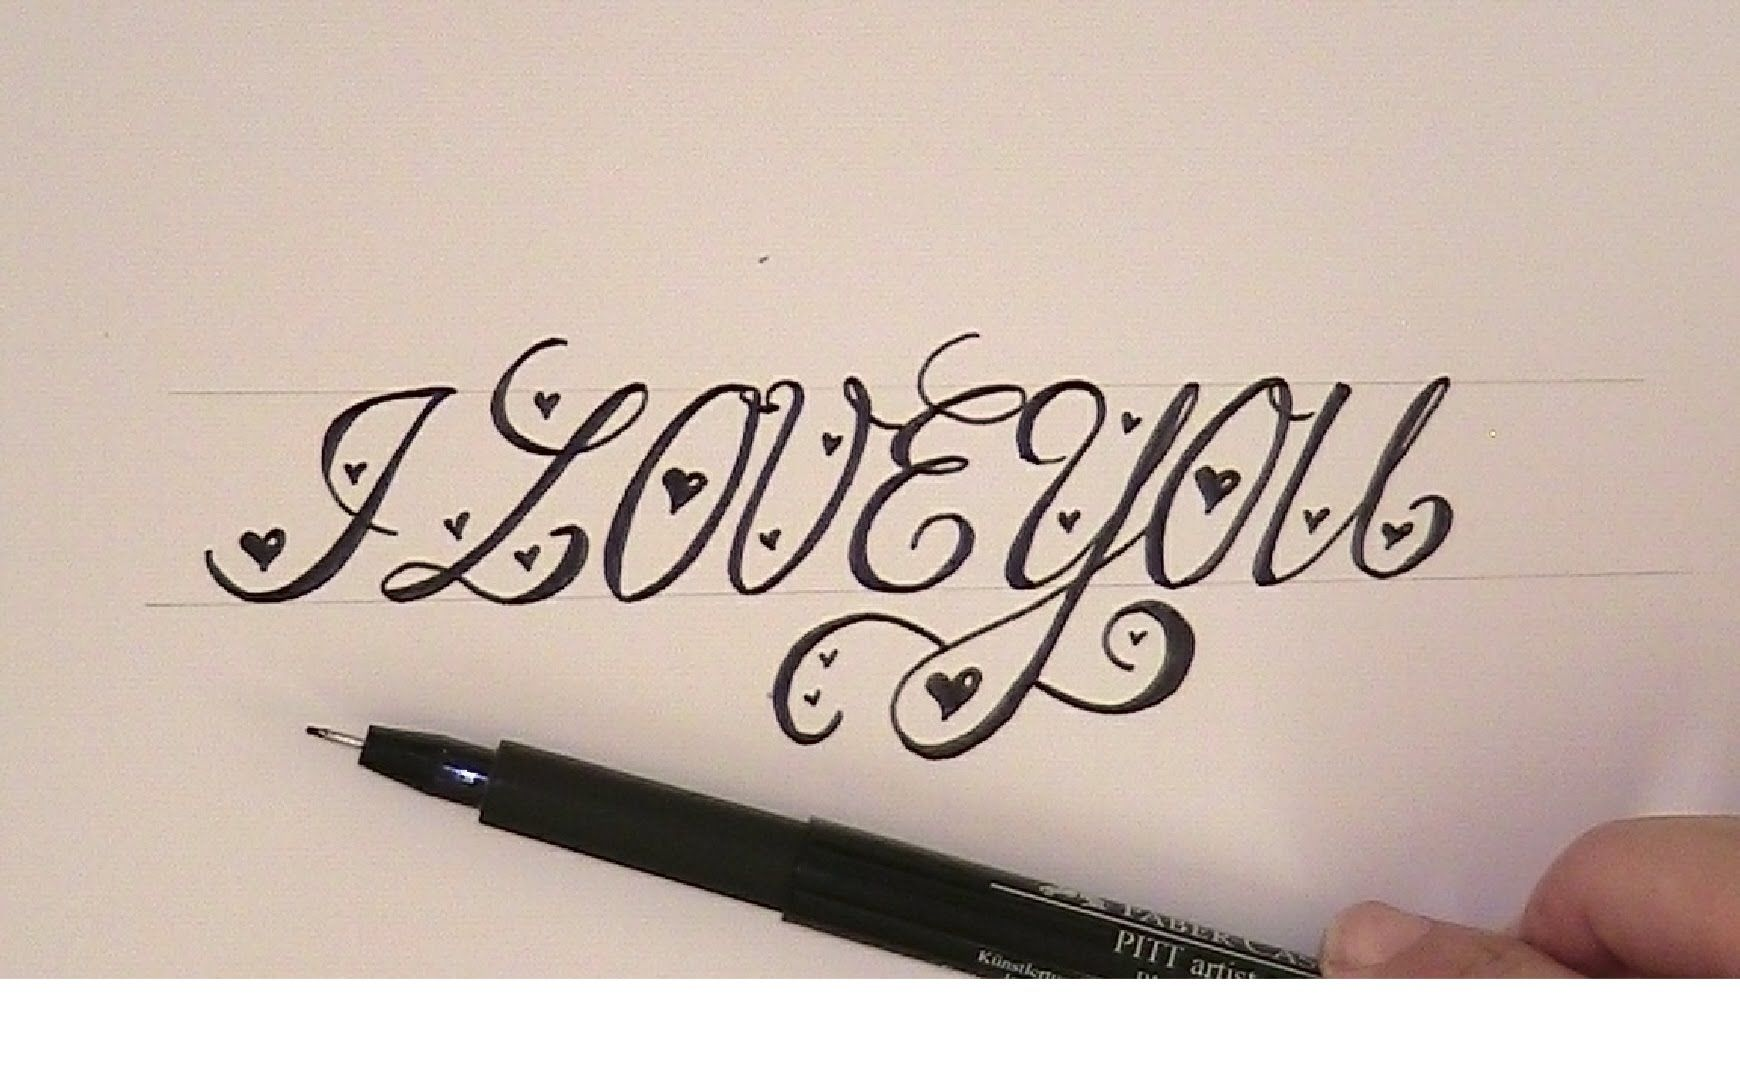 How To Write In Cursive Calligraphy